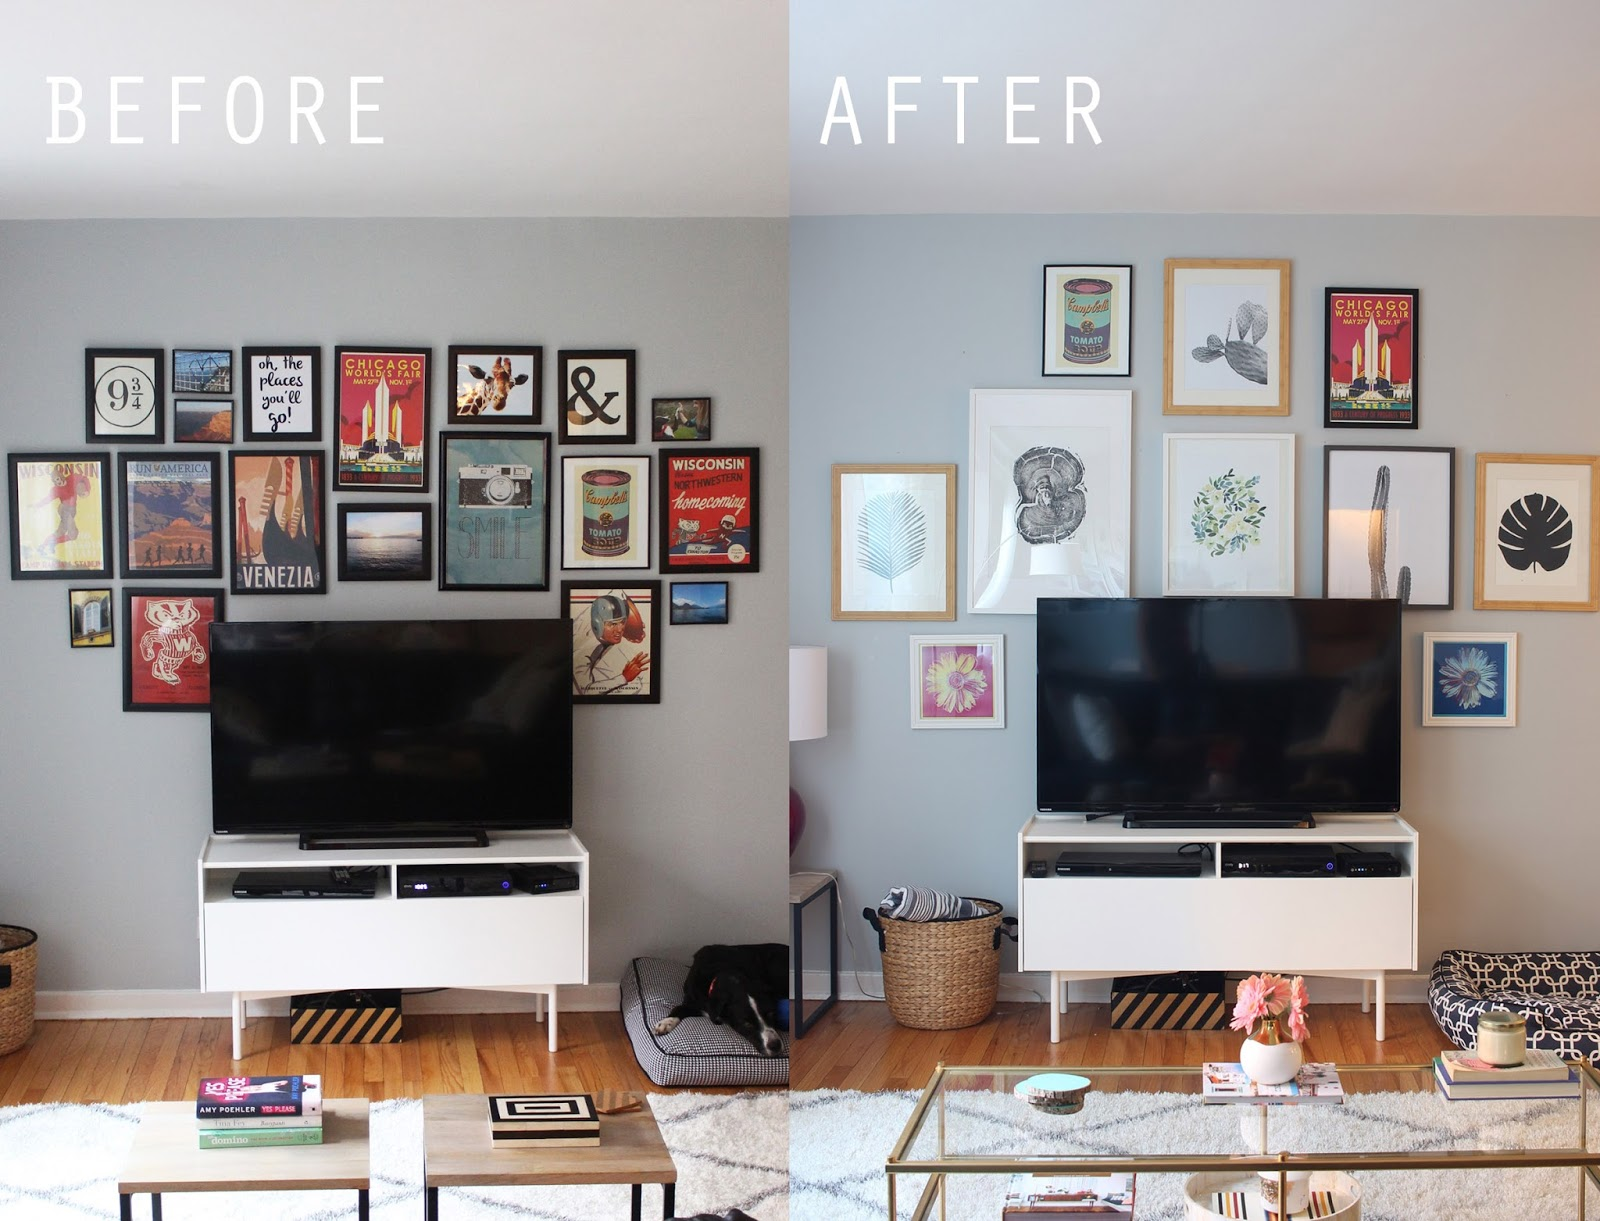 Evolving%2BIdeas%2BAbout%2BHow%2Bto%2BDecorate%2BArt%2BPlacement%2Bon%2BWalls%2B%25283%2529 Evolving Ideas About How to Decorate Art Placement on Walls Interior